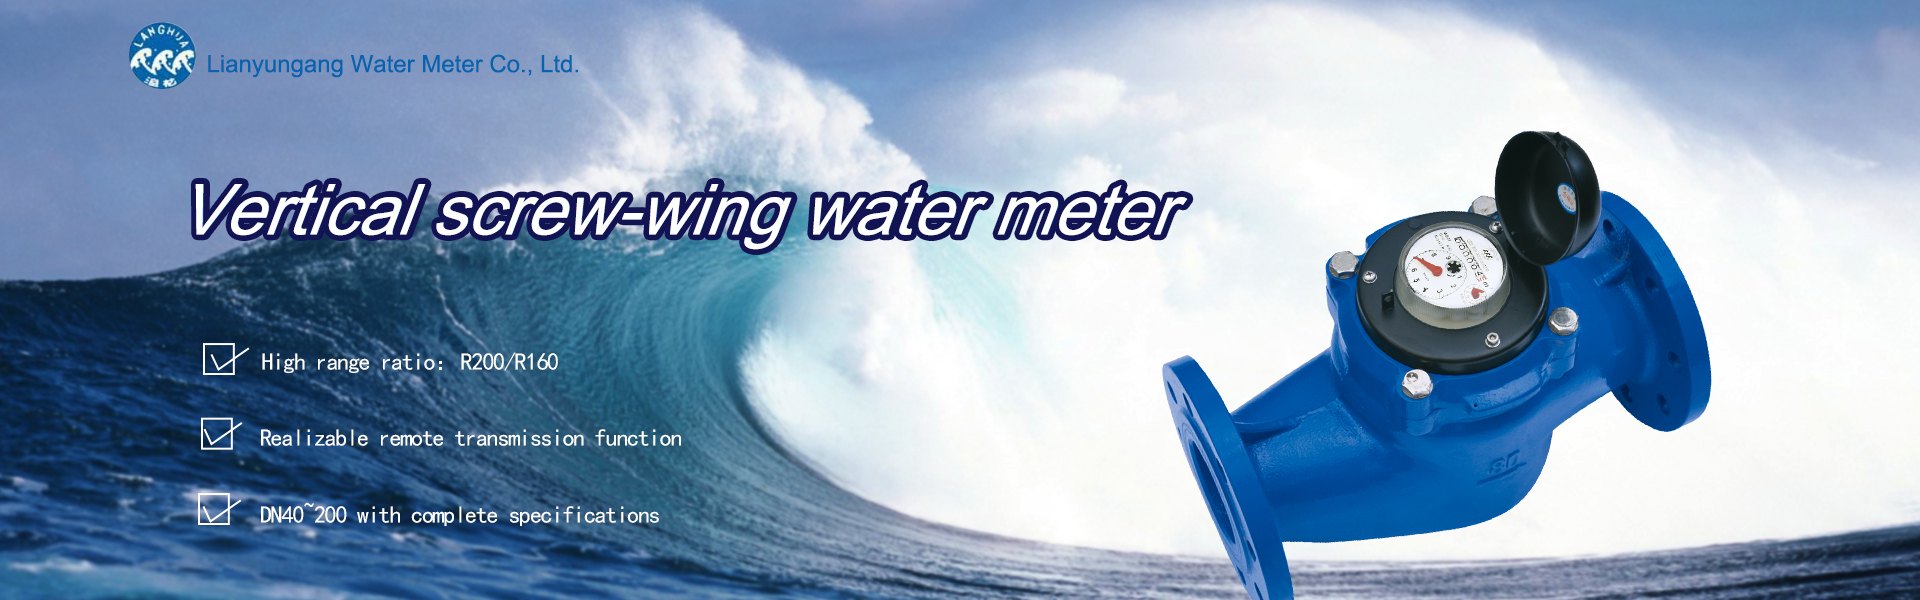 Lianyungang Watermeter Co., Ltd.